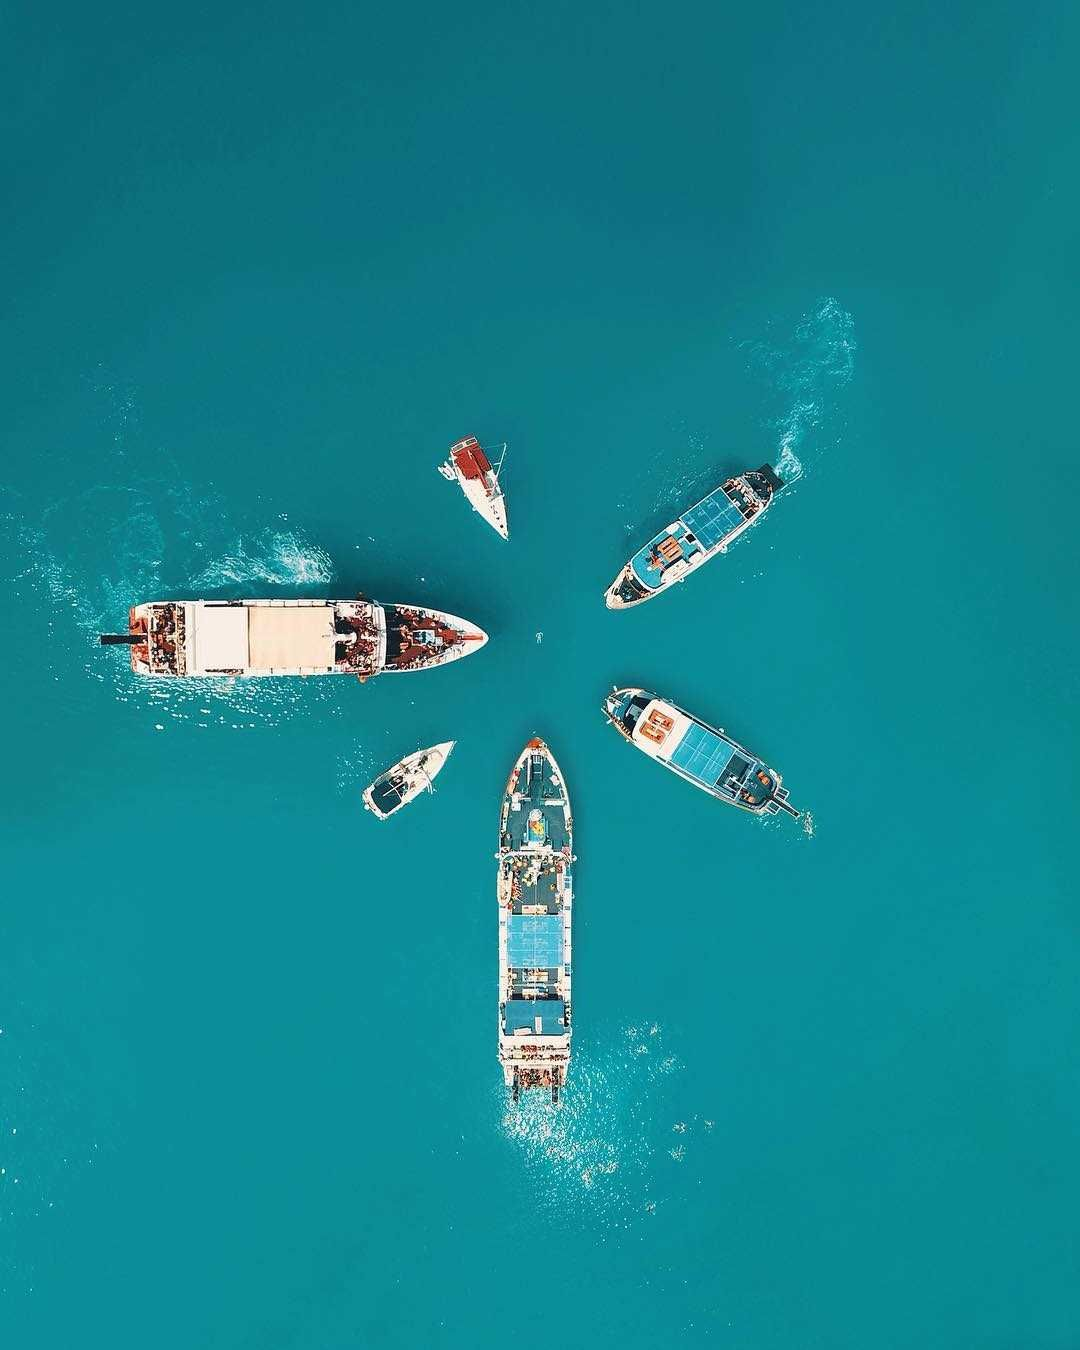 Stunning Aerial and Drone Photography by Costas Spathis #photography #aerial #travel #dronephotography #landscape | Drone photography, Aerial, Artsy photography